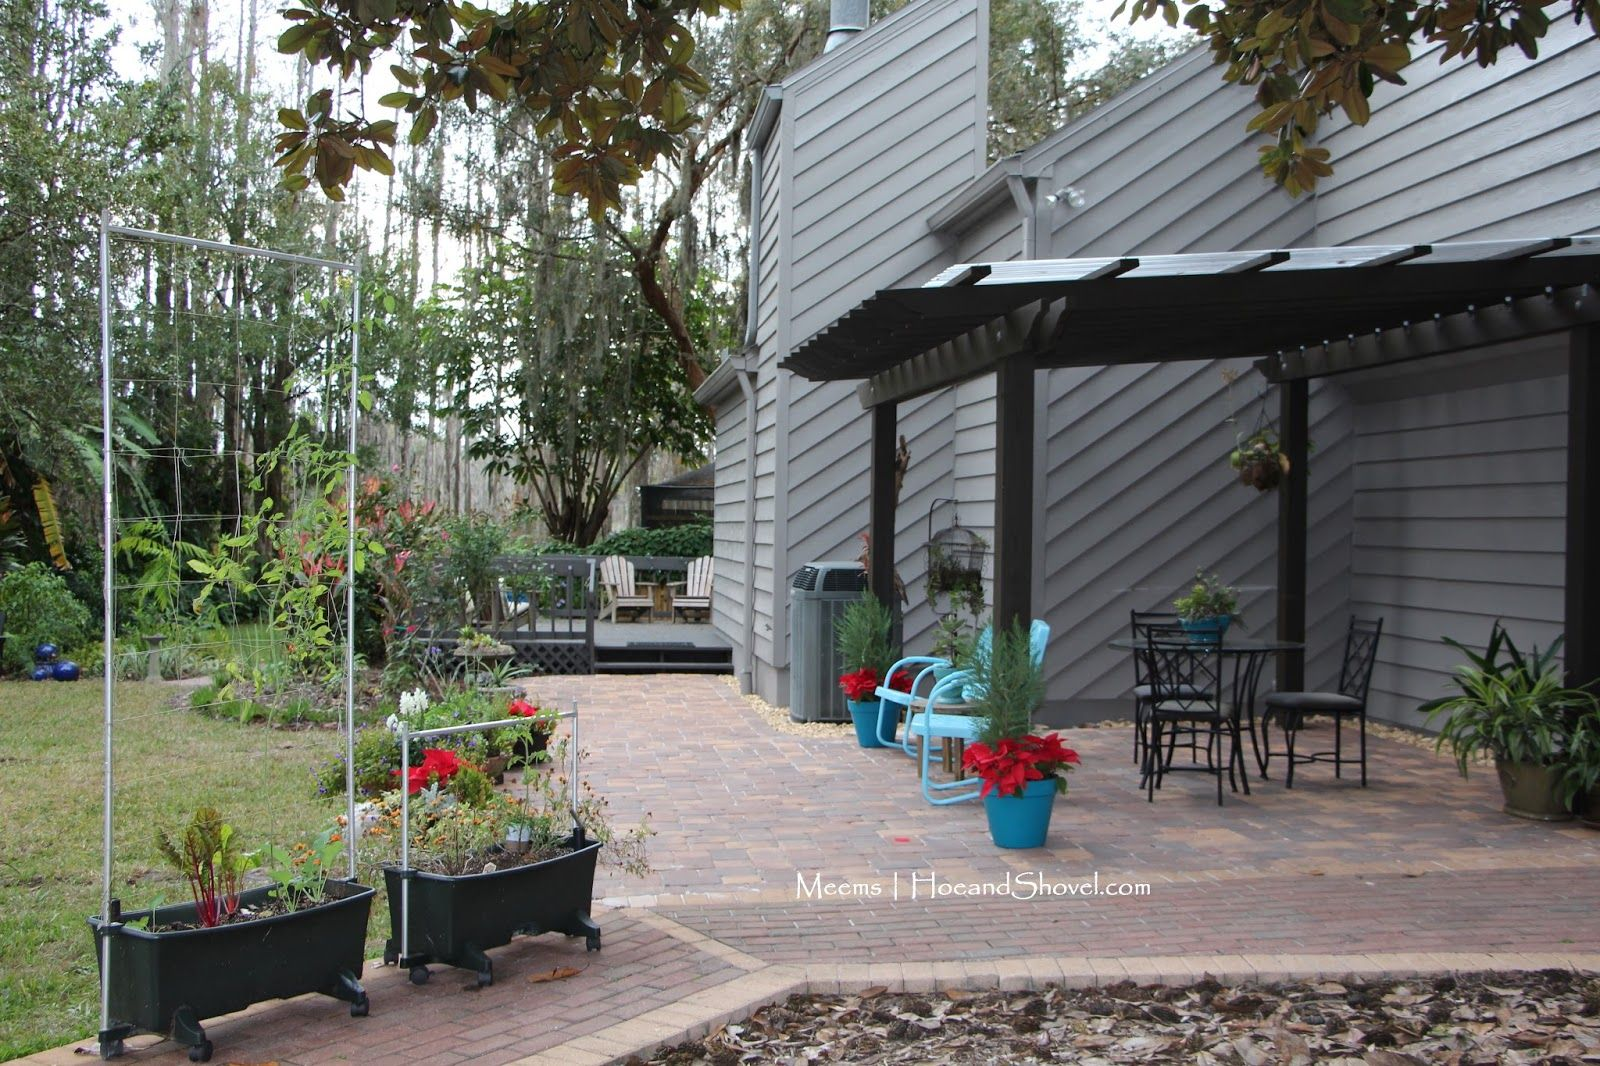 High Quality Outdoor Spaces · Dreams For The Garden. We All Like To Dream. Dreams Really  Do Come True